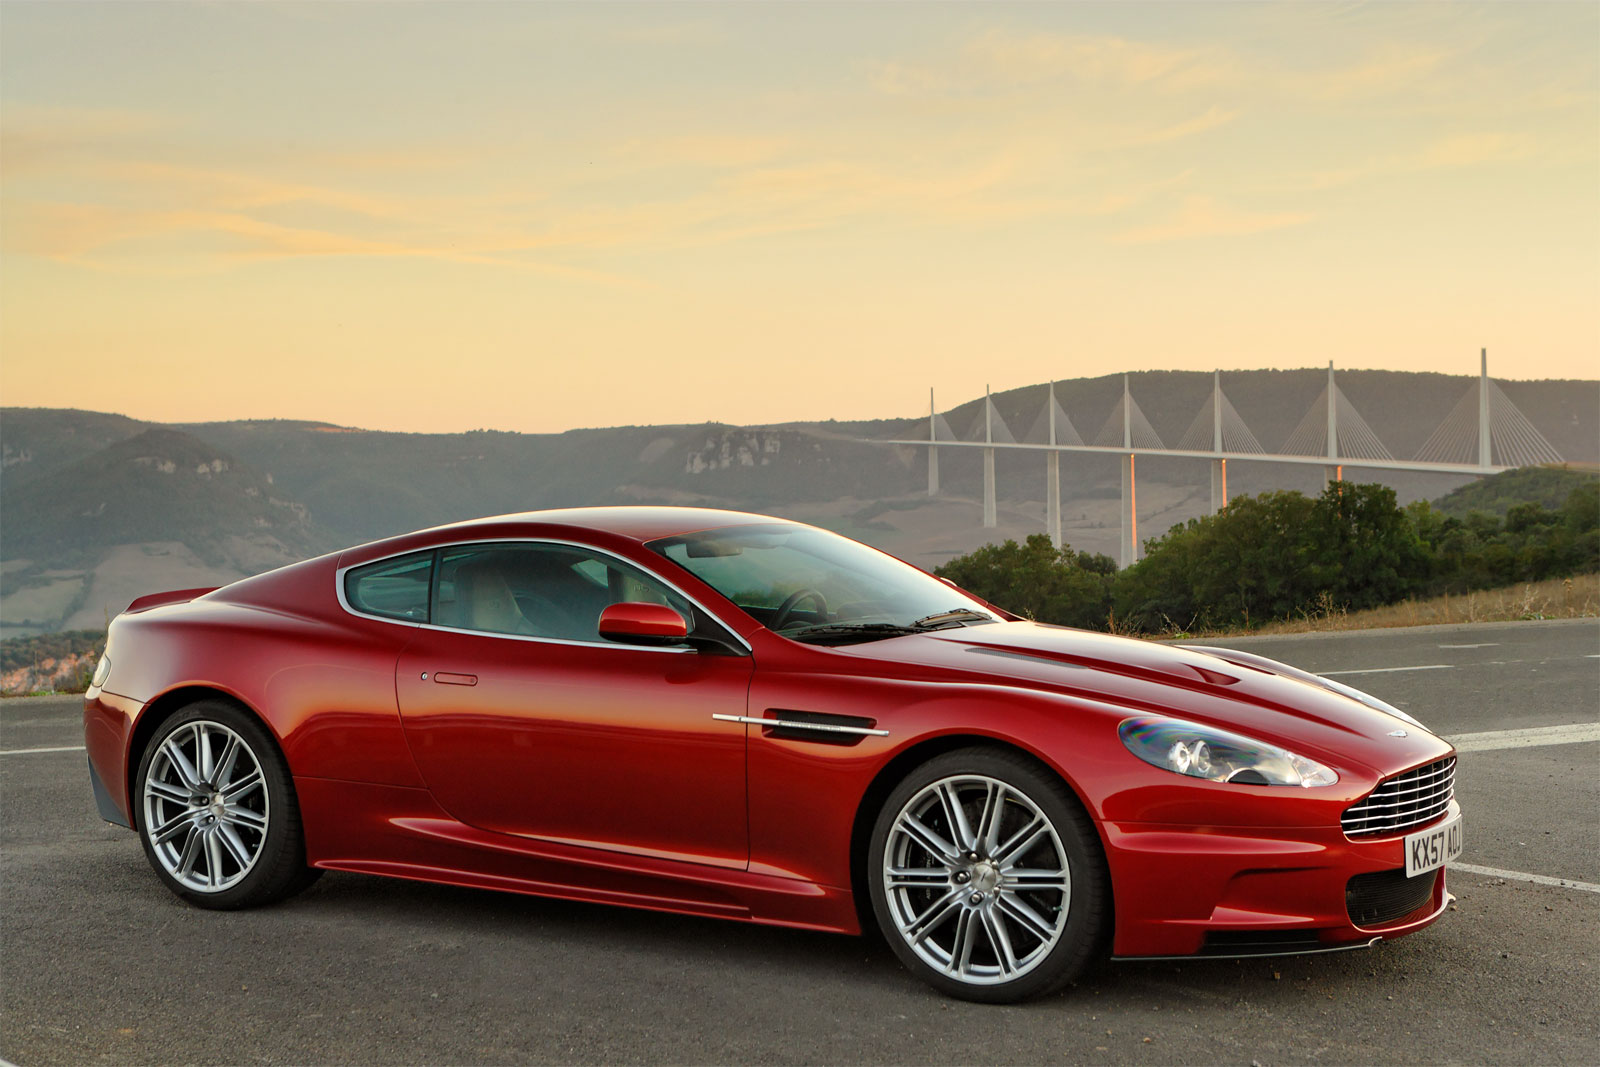 sport cars aston martin dbs hd wallpapers 2010. Black Bedroom Furniture Sets. Home Design Ideas